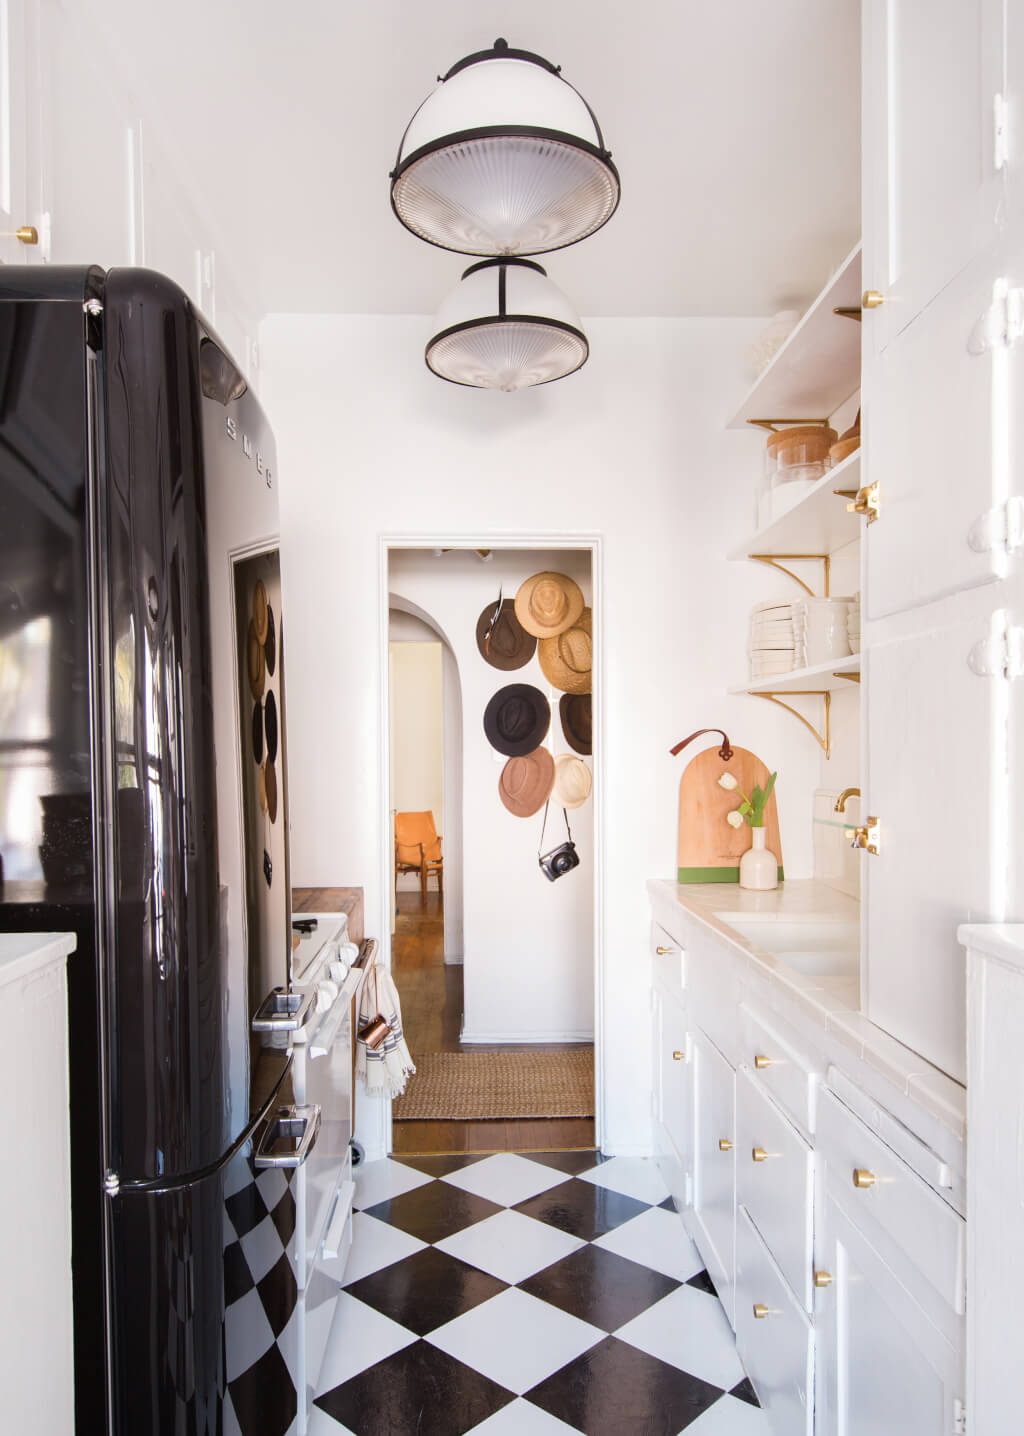 Open shelving in small kitchens.